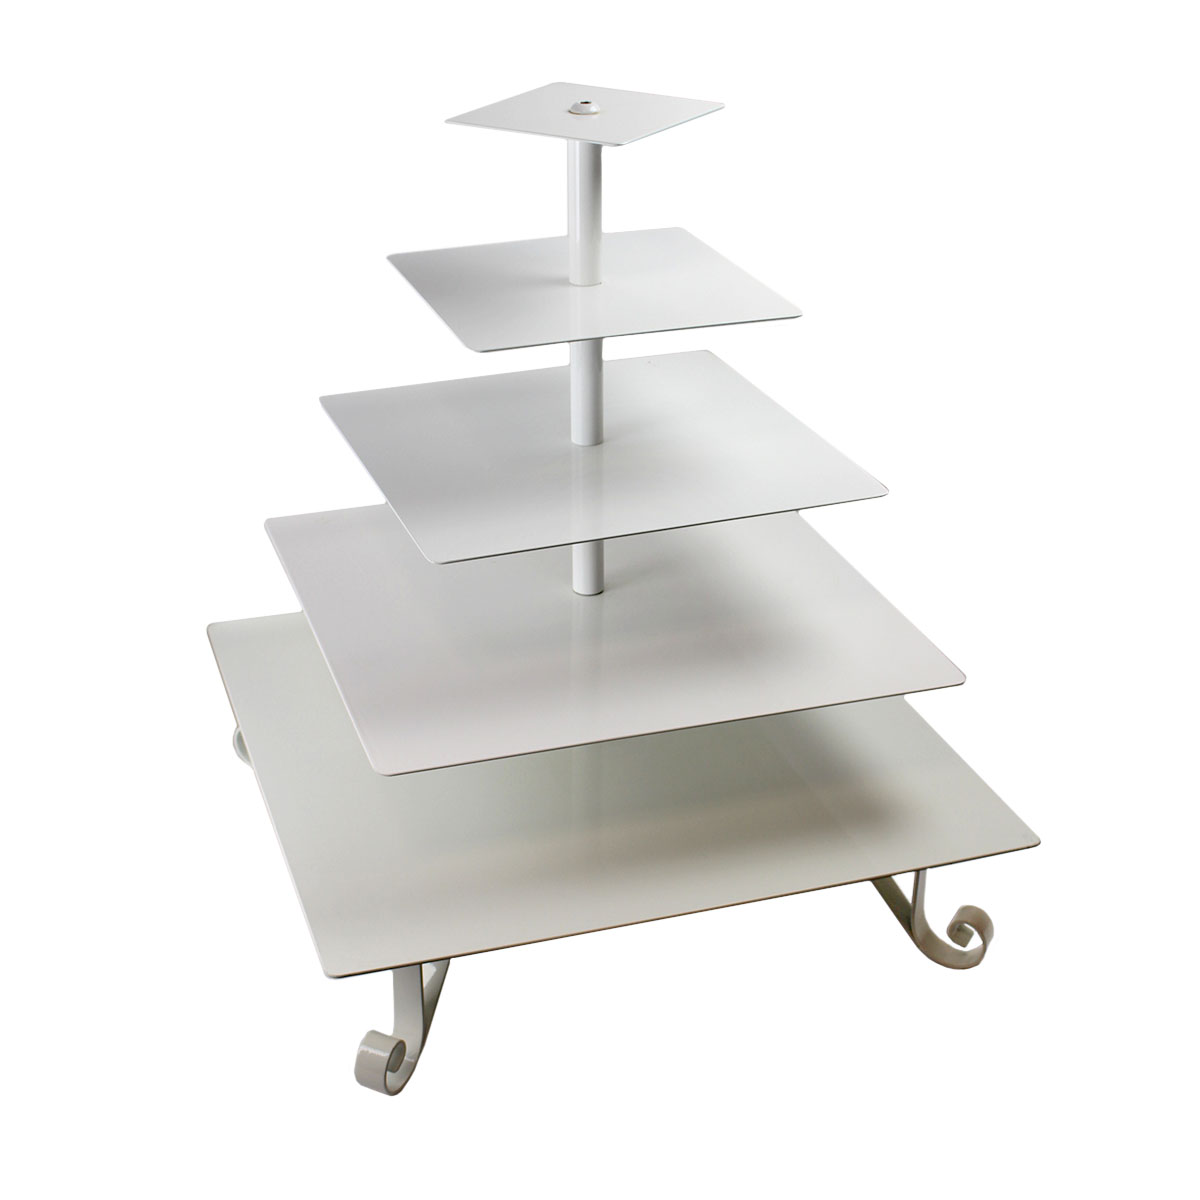 5 Tier White Square Tray